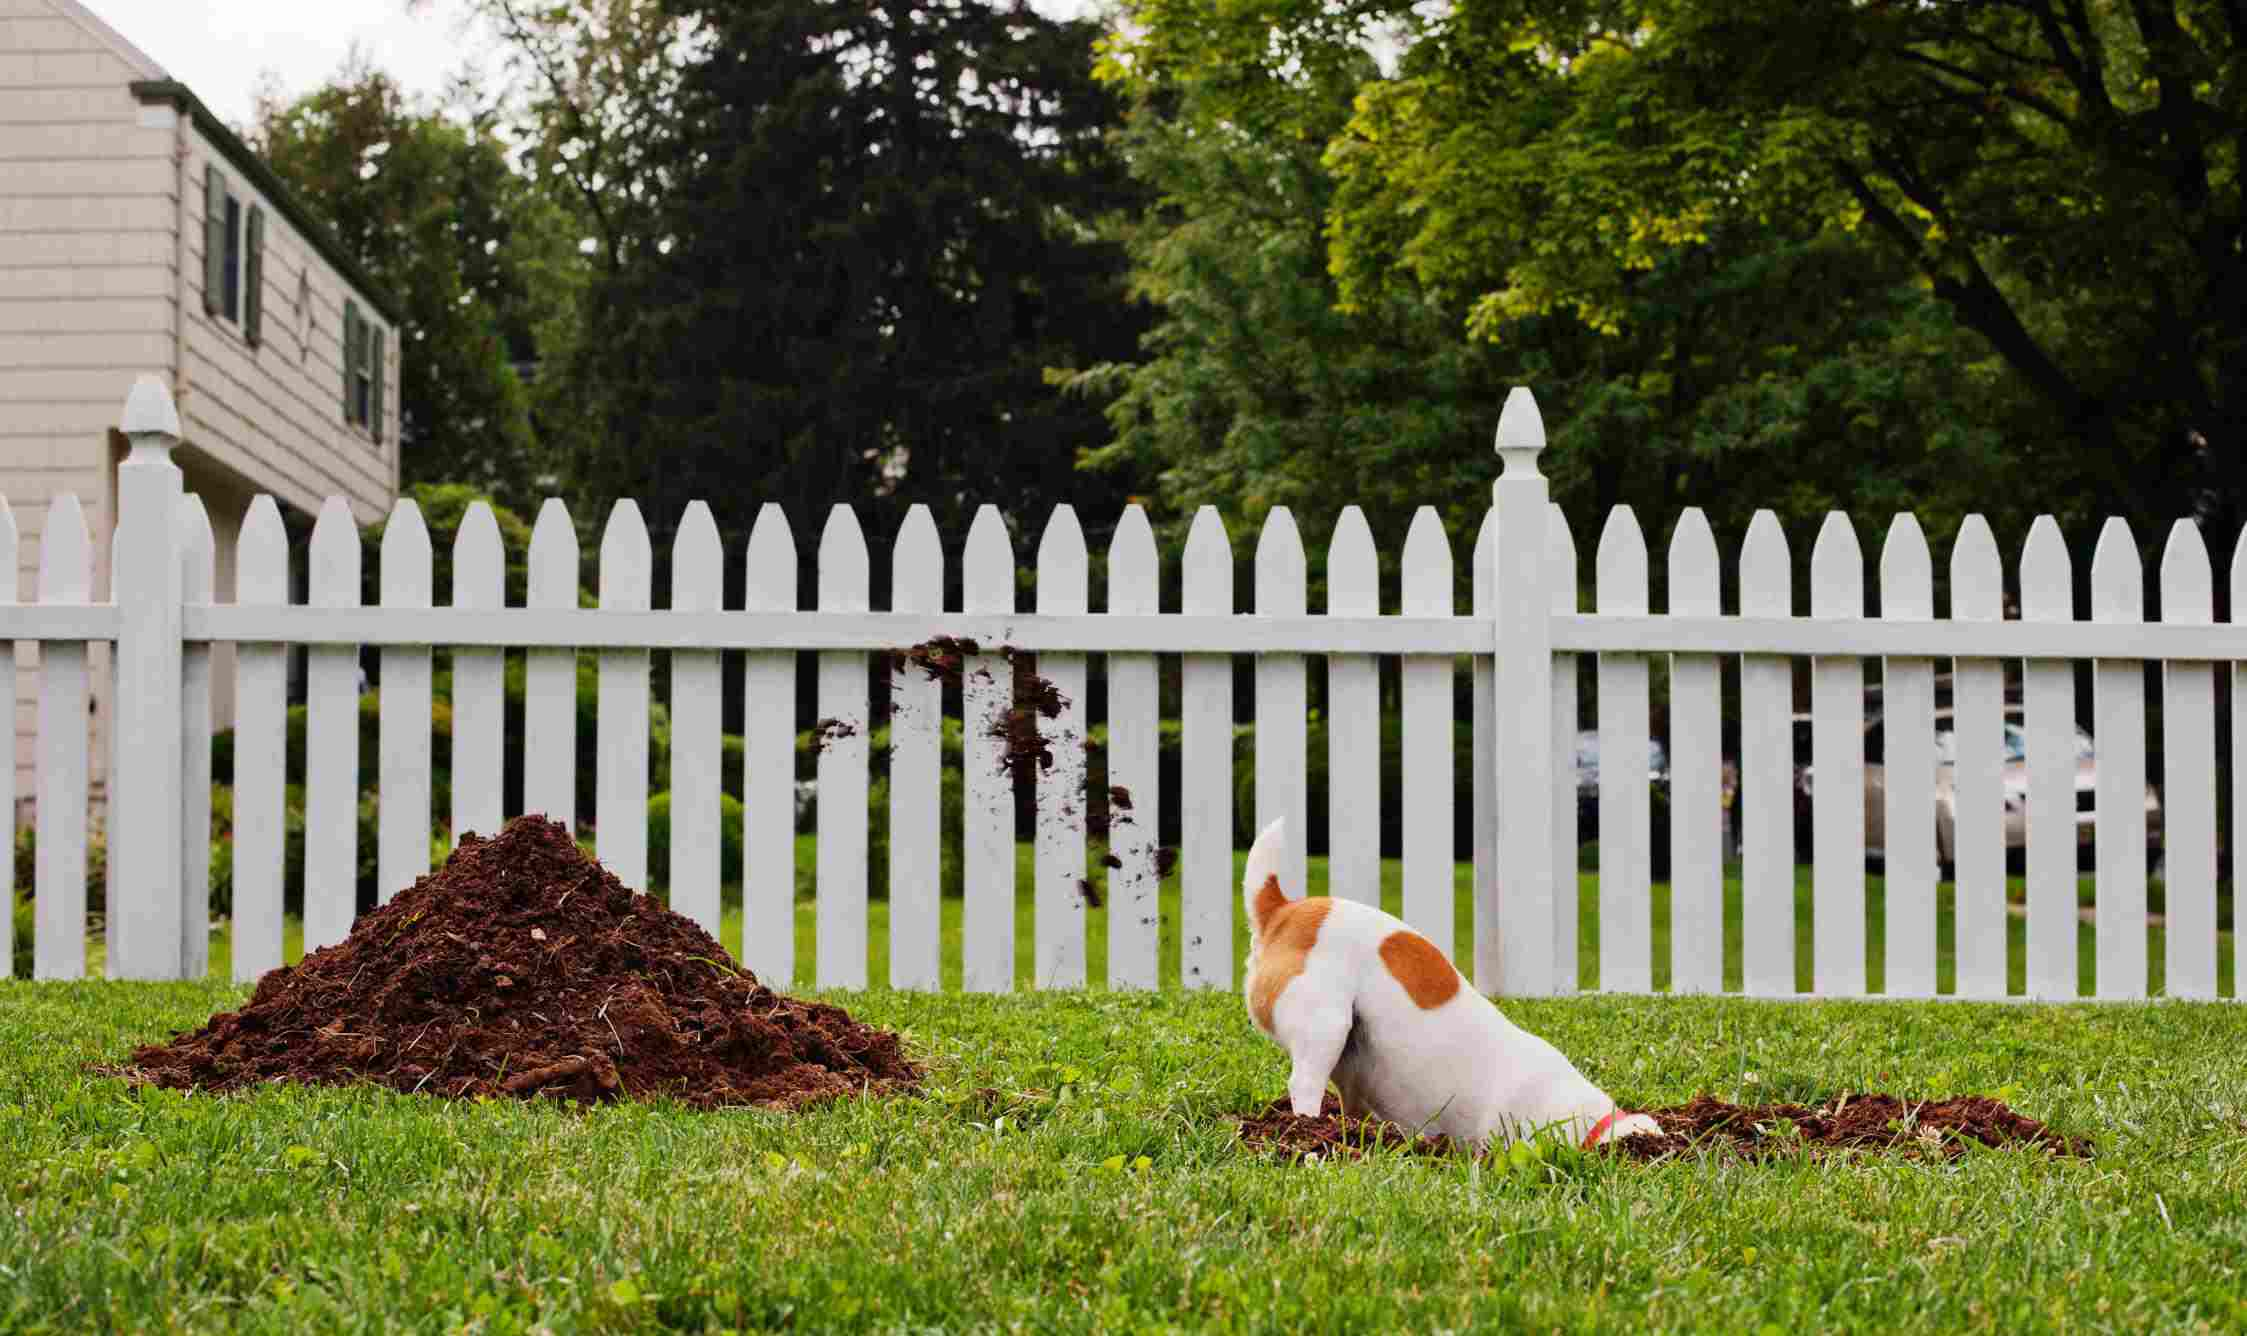 A dog digging a hole in a front yard